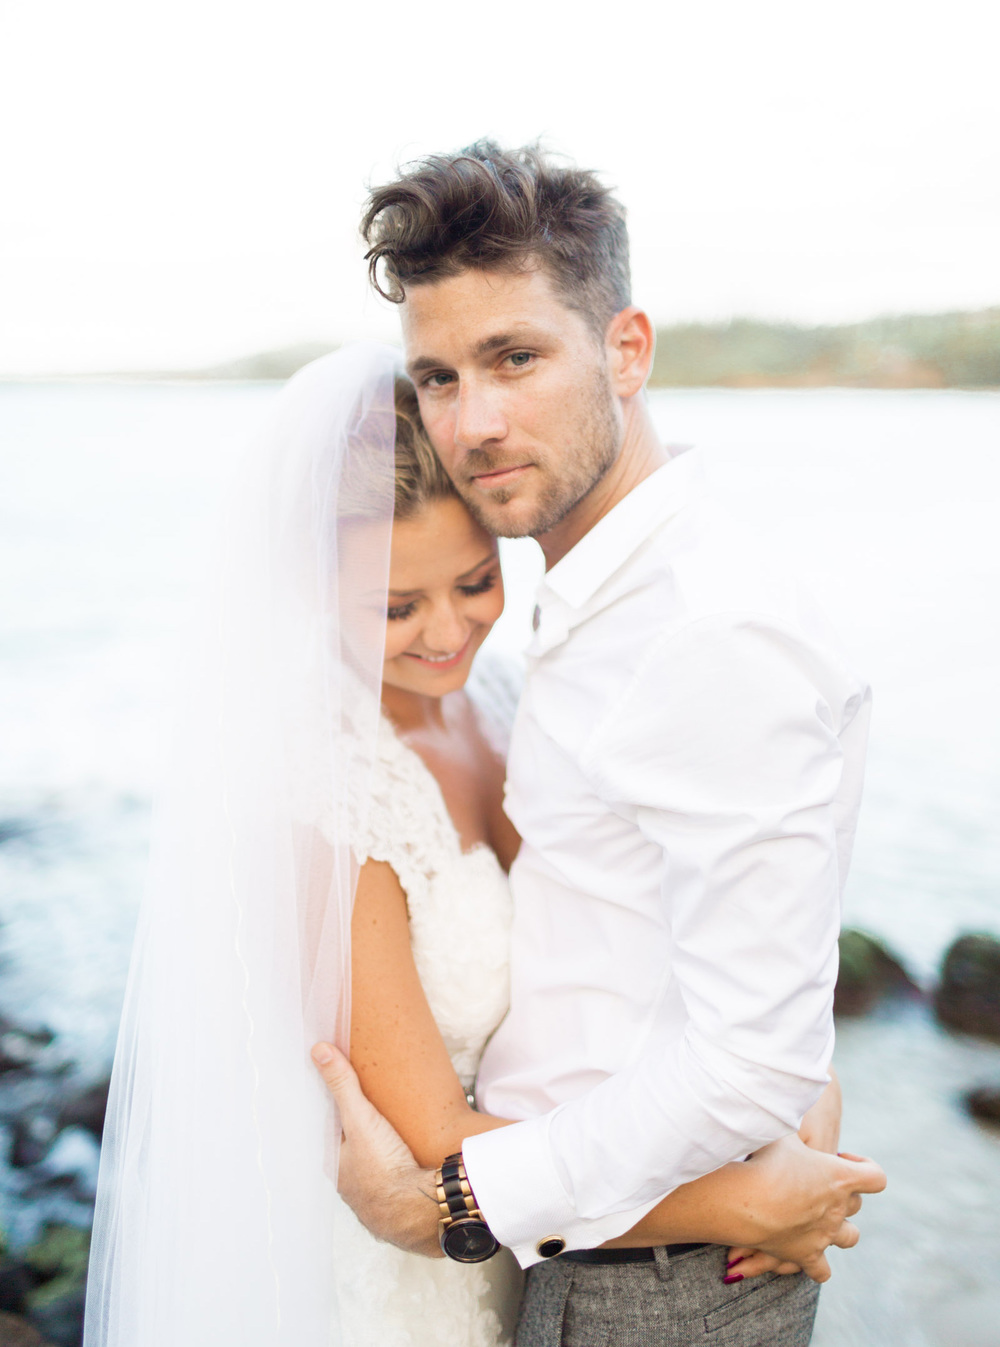 Natalie-Schutt-Photography--Hawaii-Wedding_01.jpg